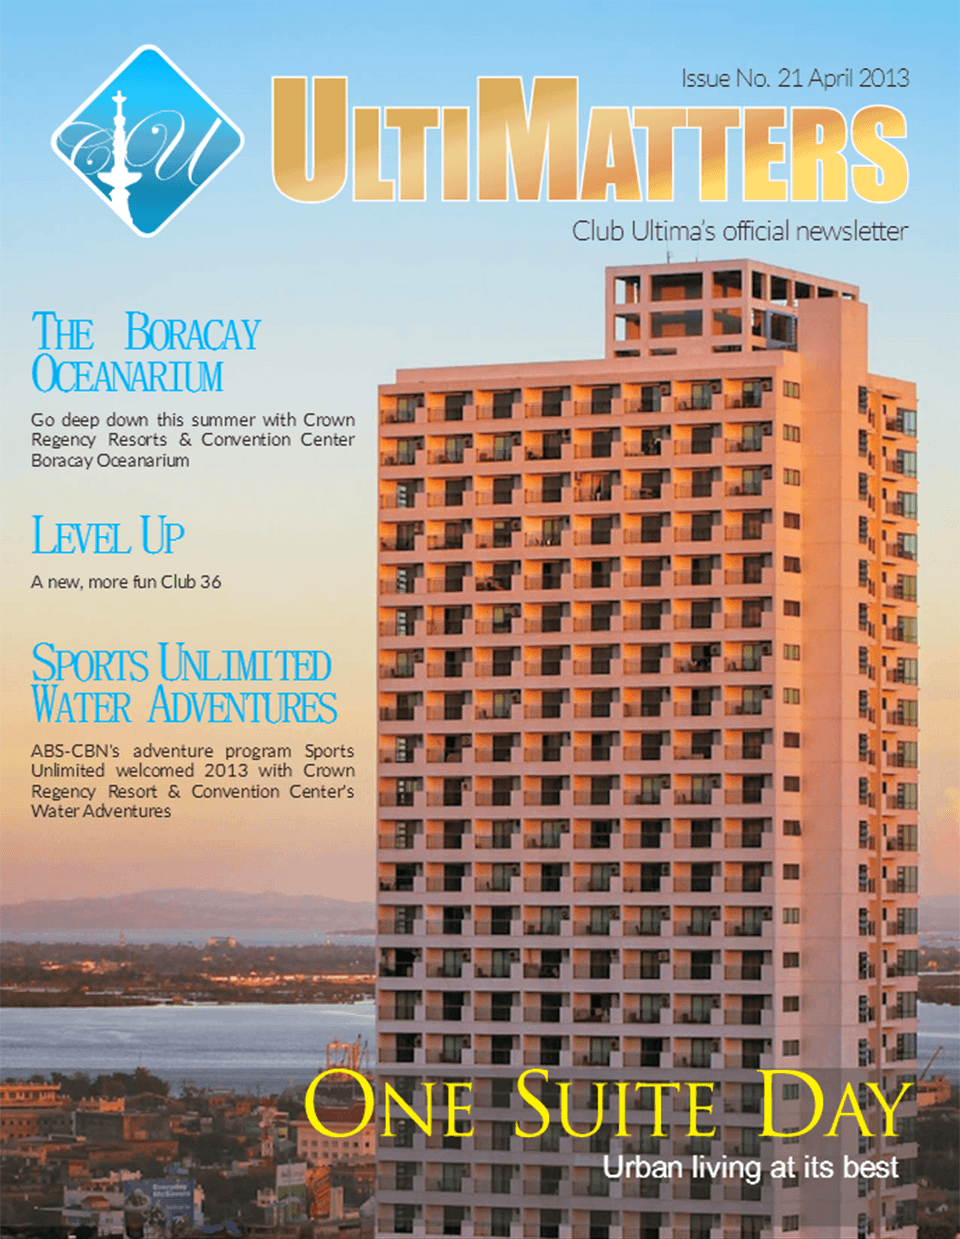 Ultimatters Issue No. 21